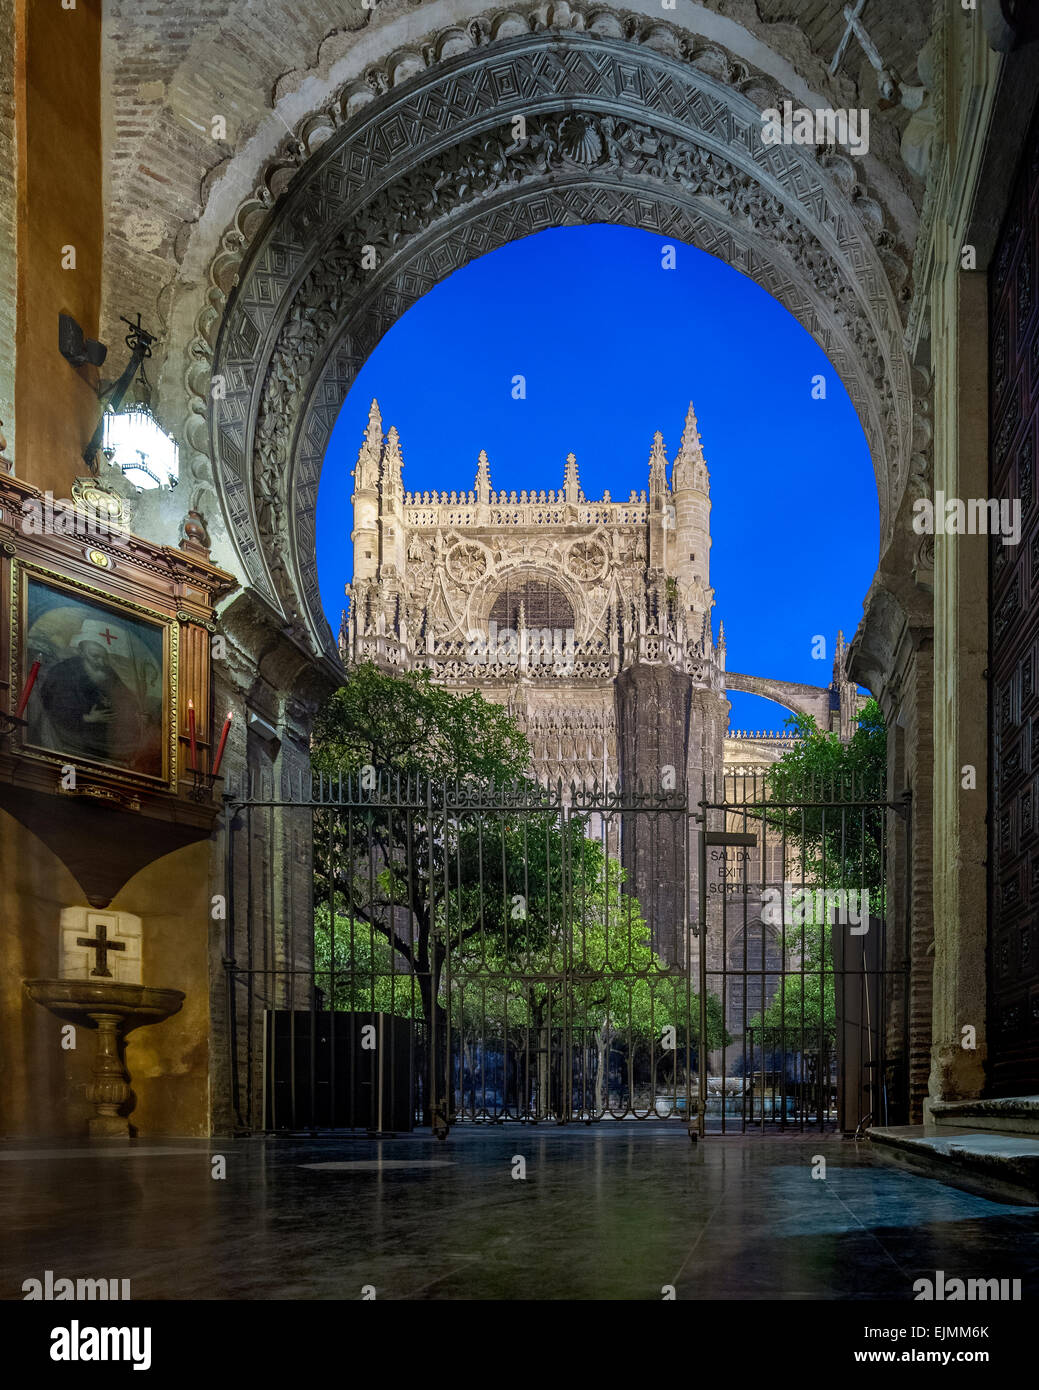 Seville Cathedral at night from the Door of Forgiveness former Almohad mosque gate and the Patio de los Naranjos - Stock Image